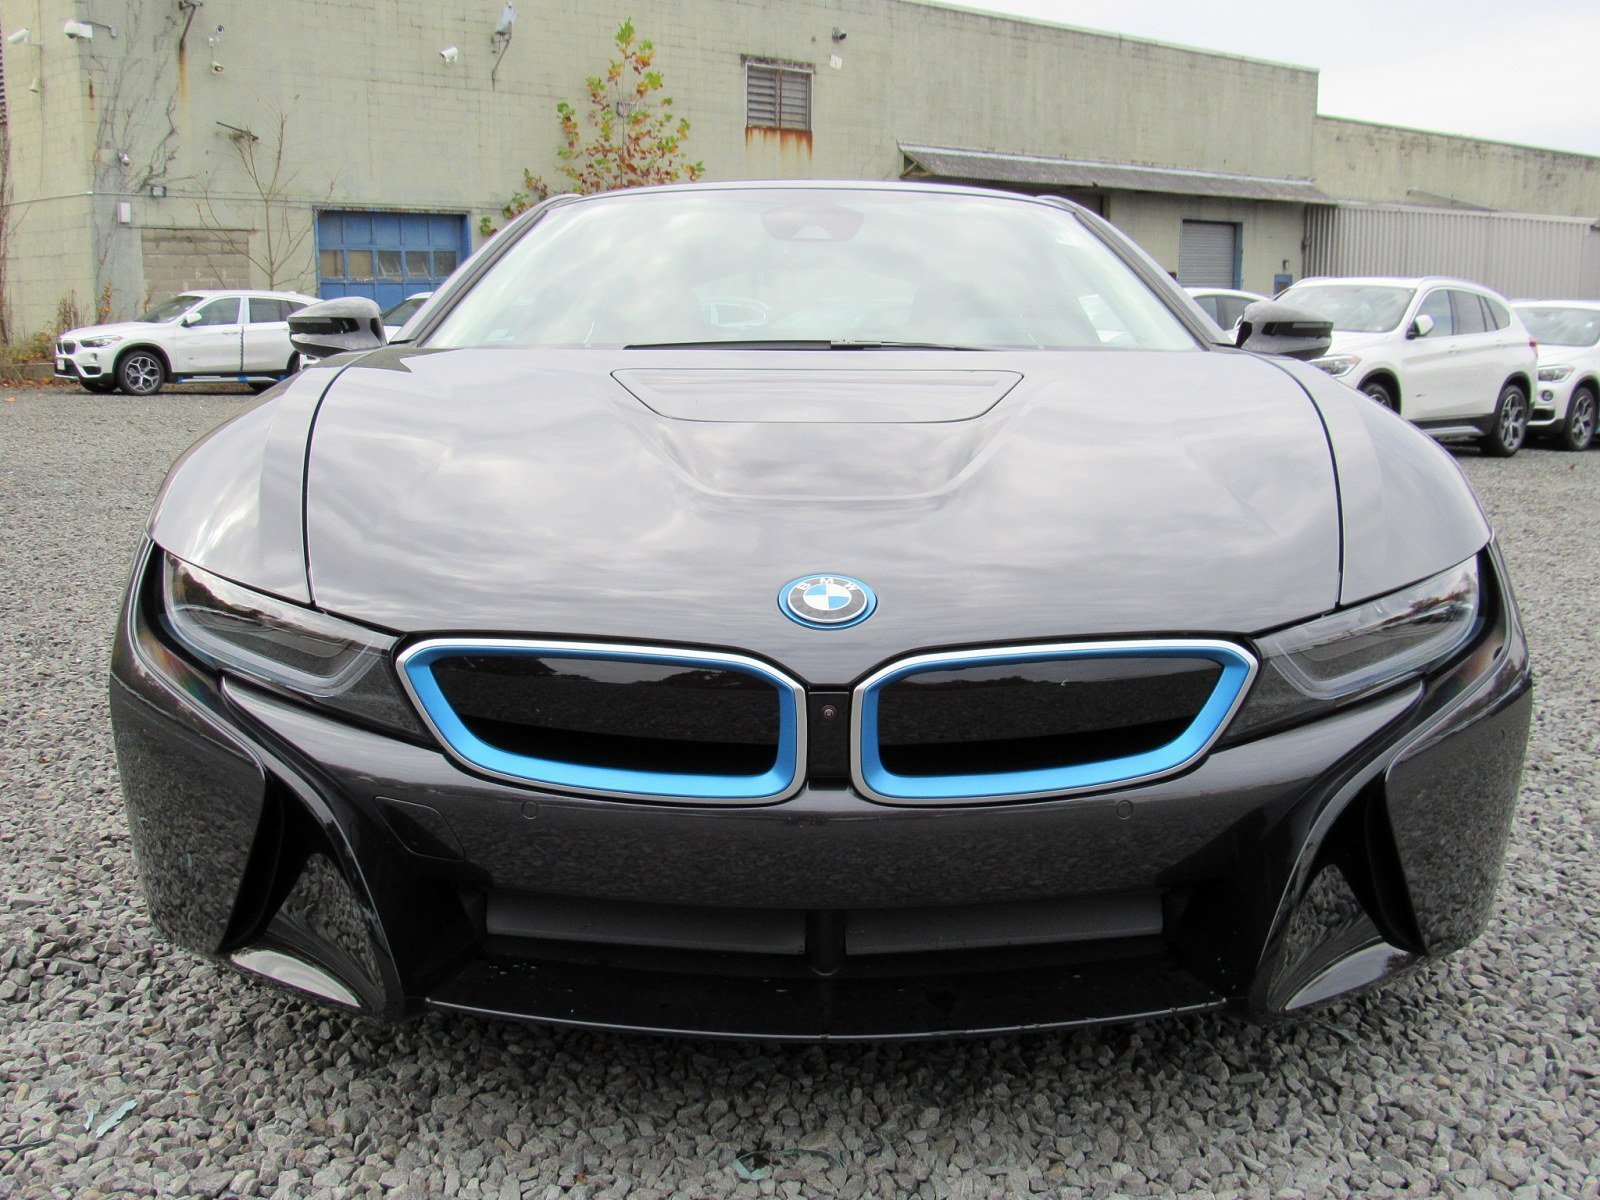 New 2019 BMW i8 2dr Car in Springfield Township EB313